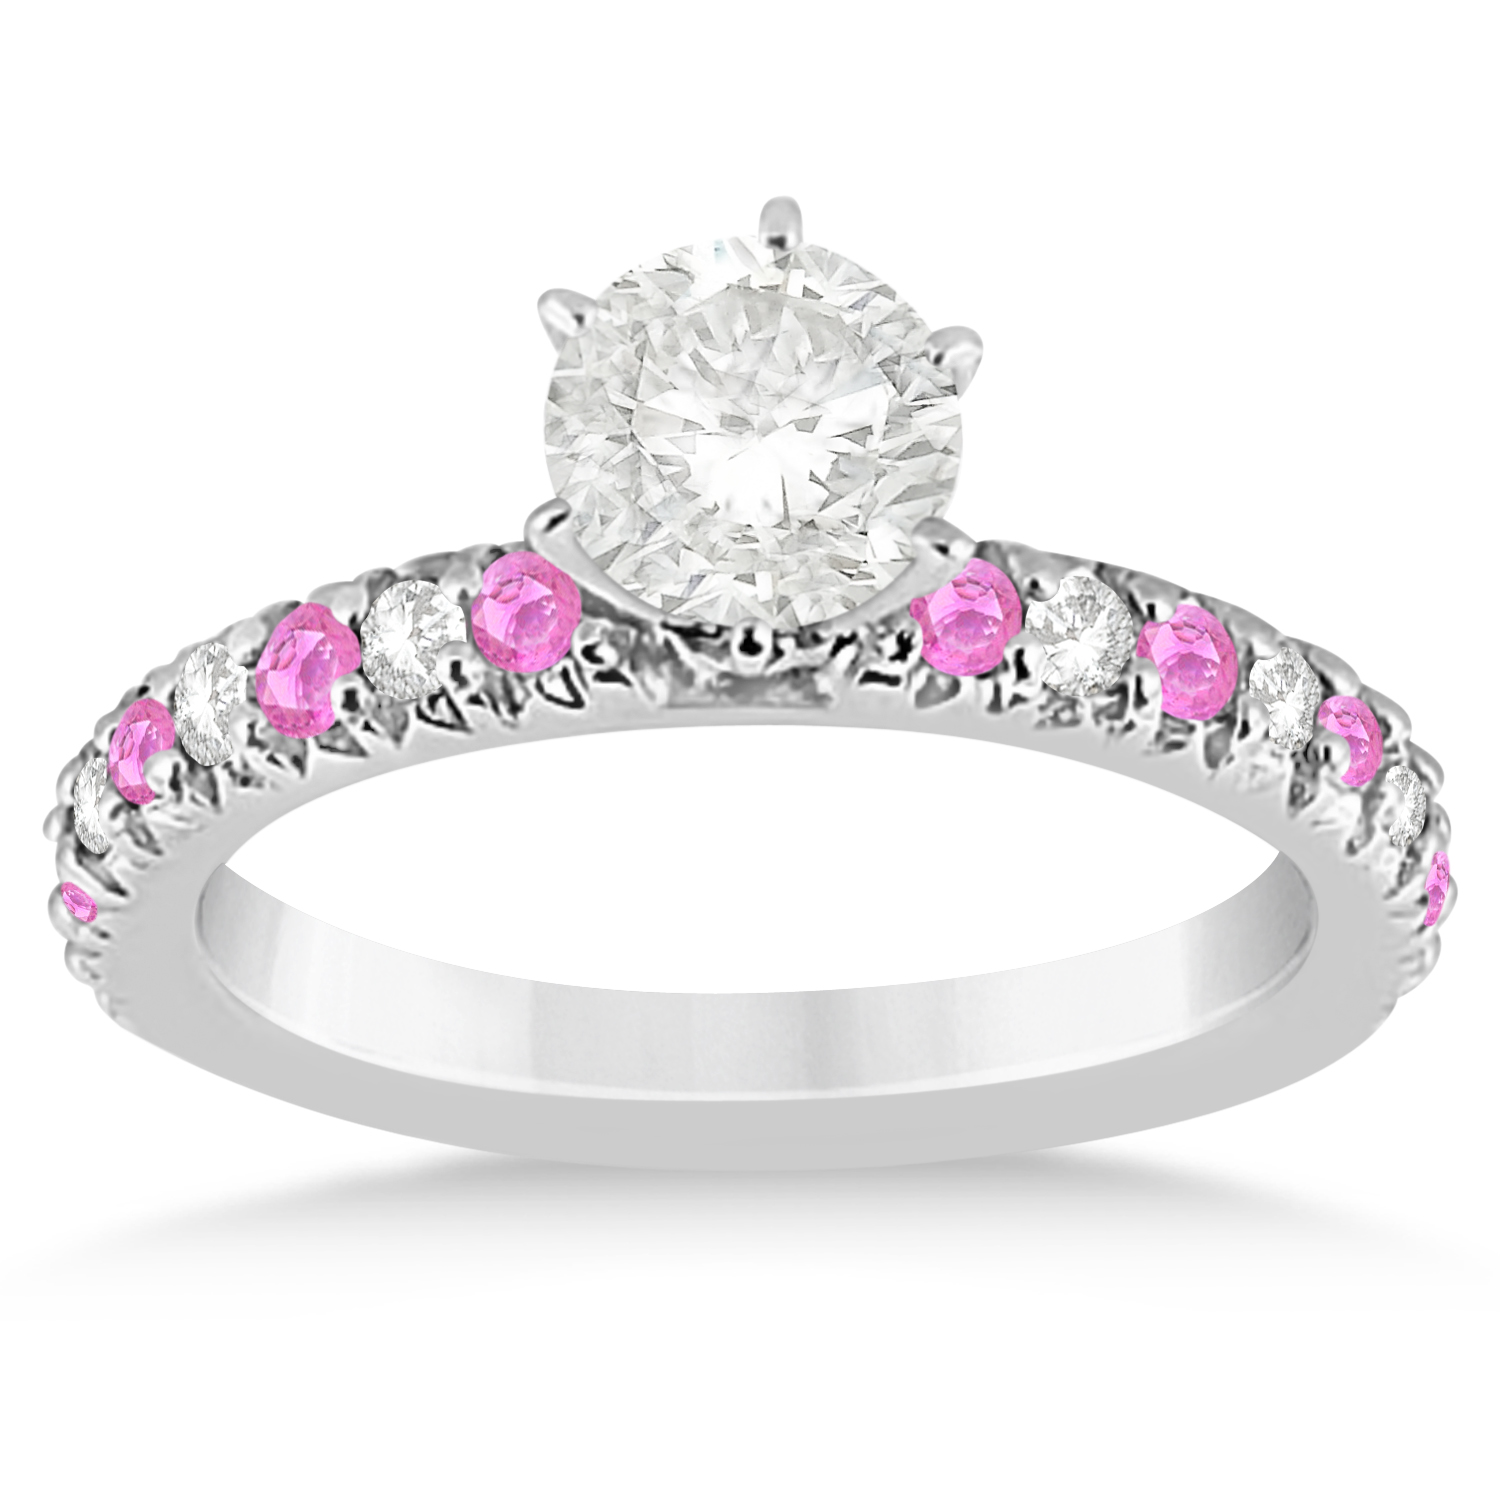 pink sapphire diamond engagement ring setting 14k white. Black Bedroom Furniture Sets. Home Design Ideas